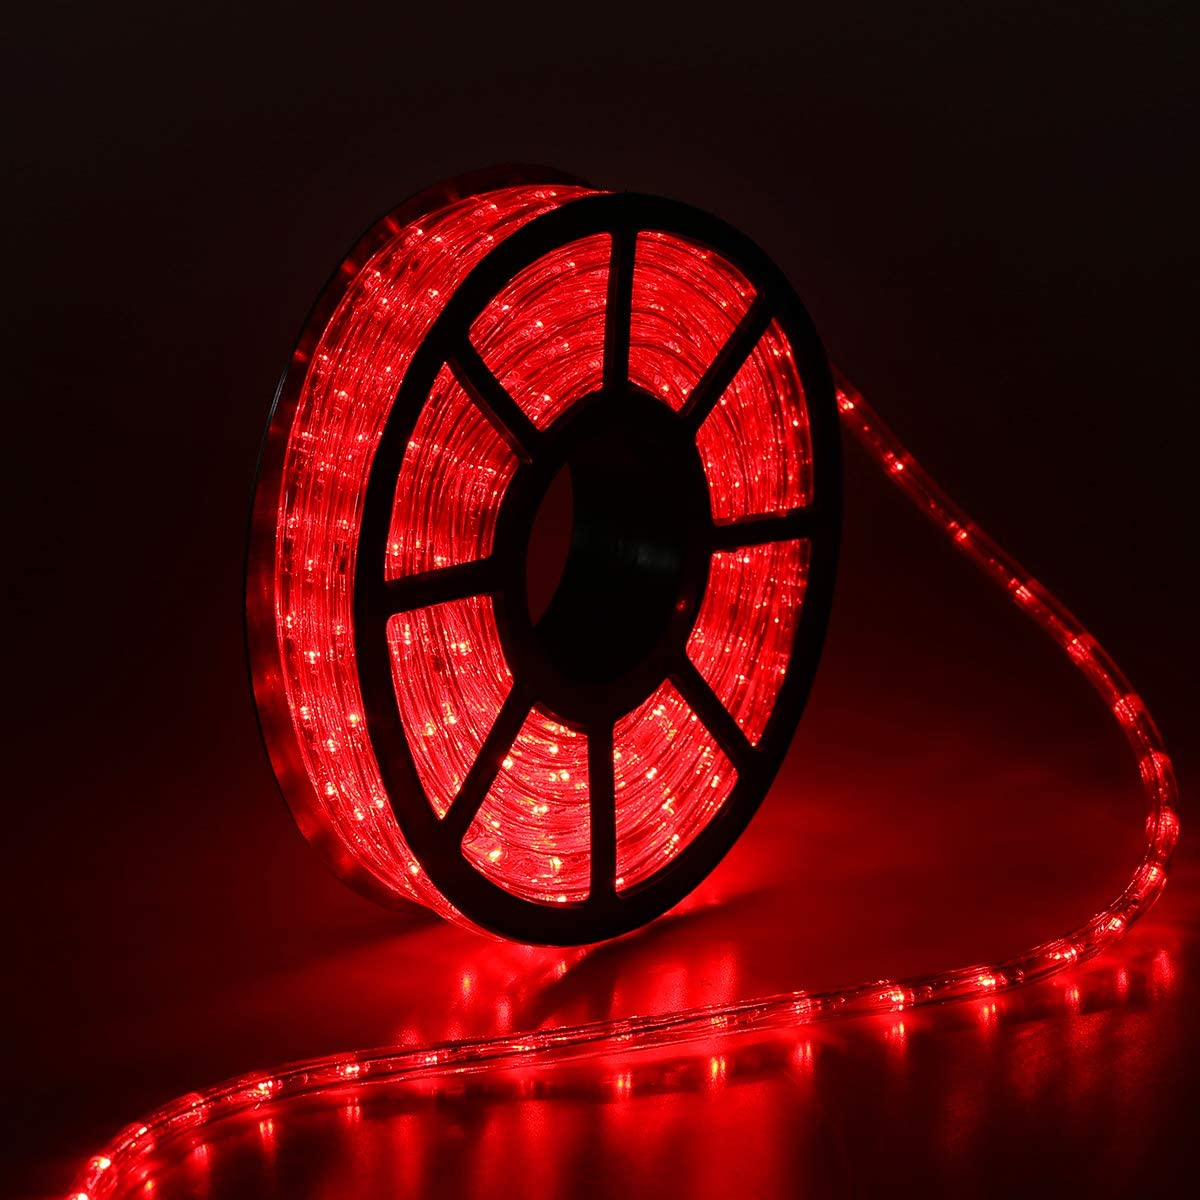 Buyagn 50Ft LED Rope Lights, LED Strip Lights Outdoor Waterproof Decorative Lighting for Eaves Decorations,Backyards Garden and Party Decoration (Red)